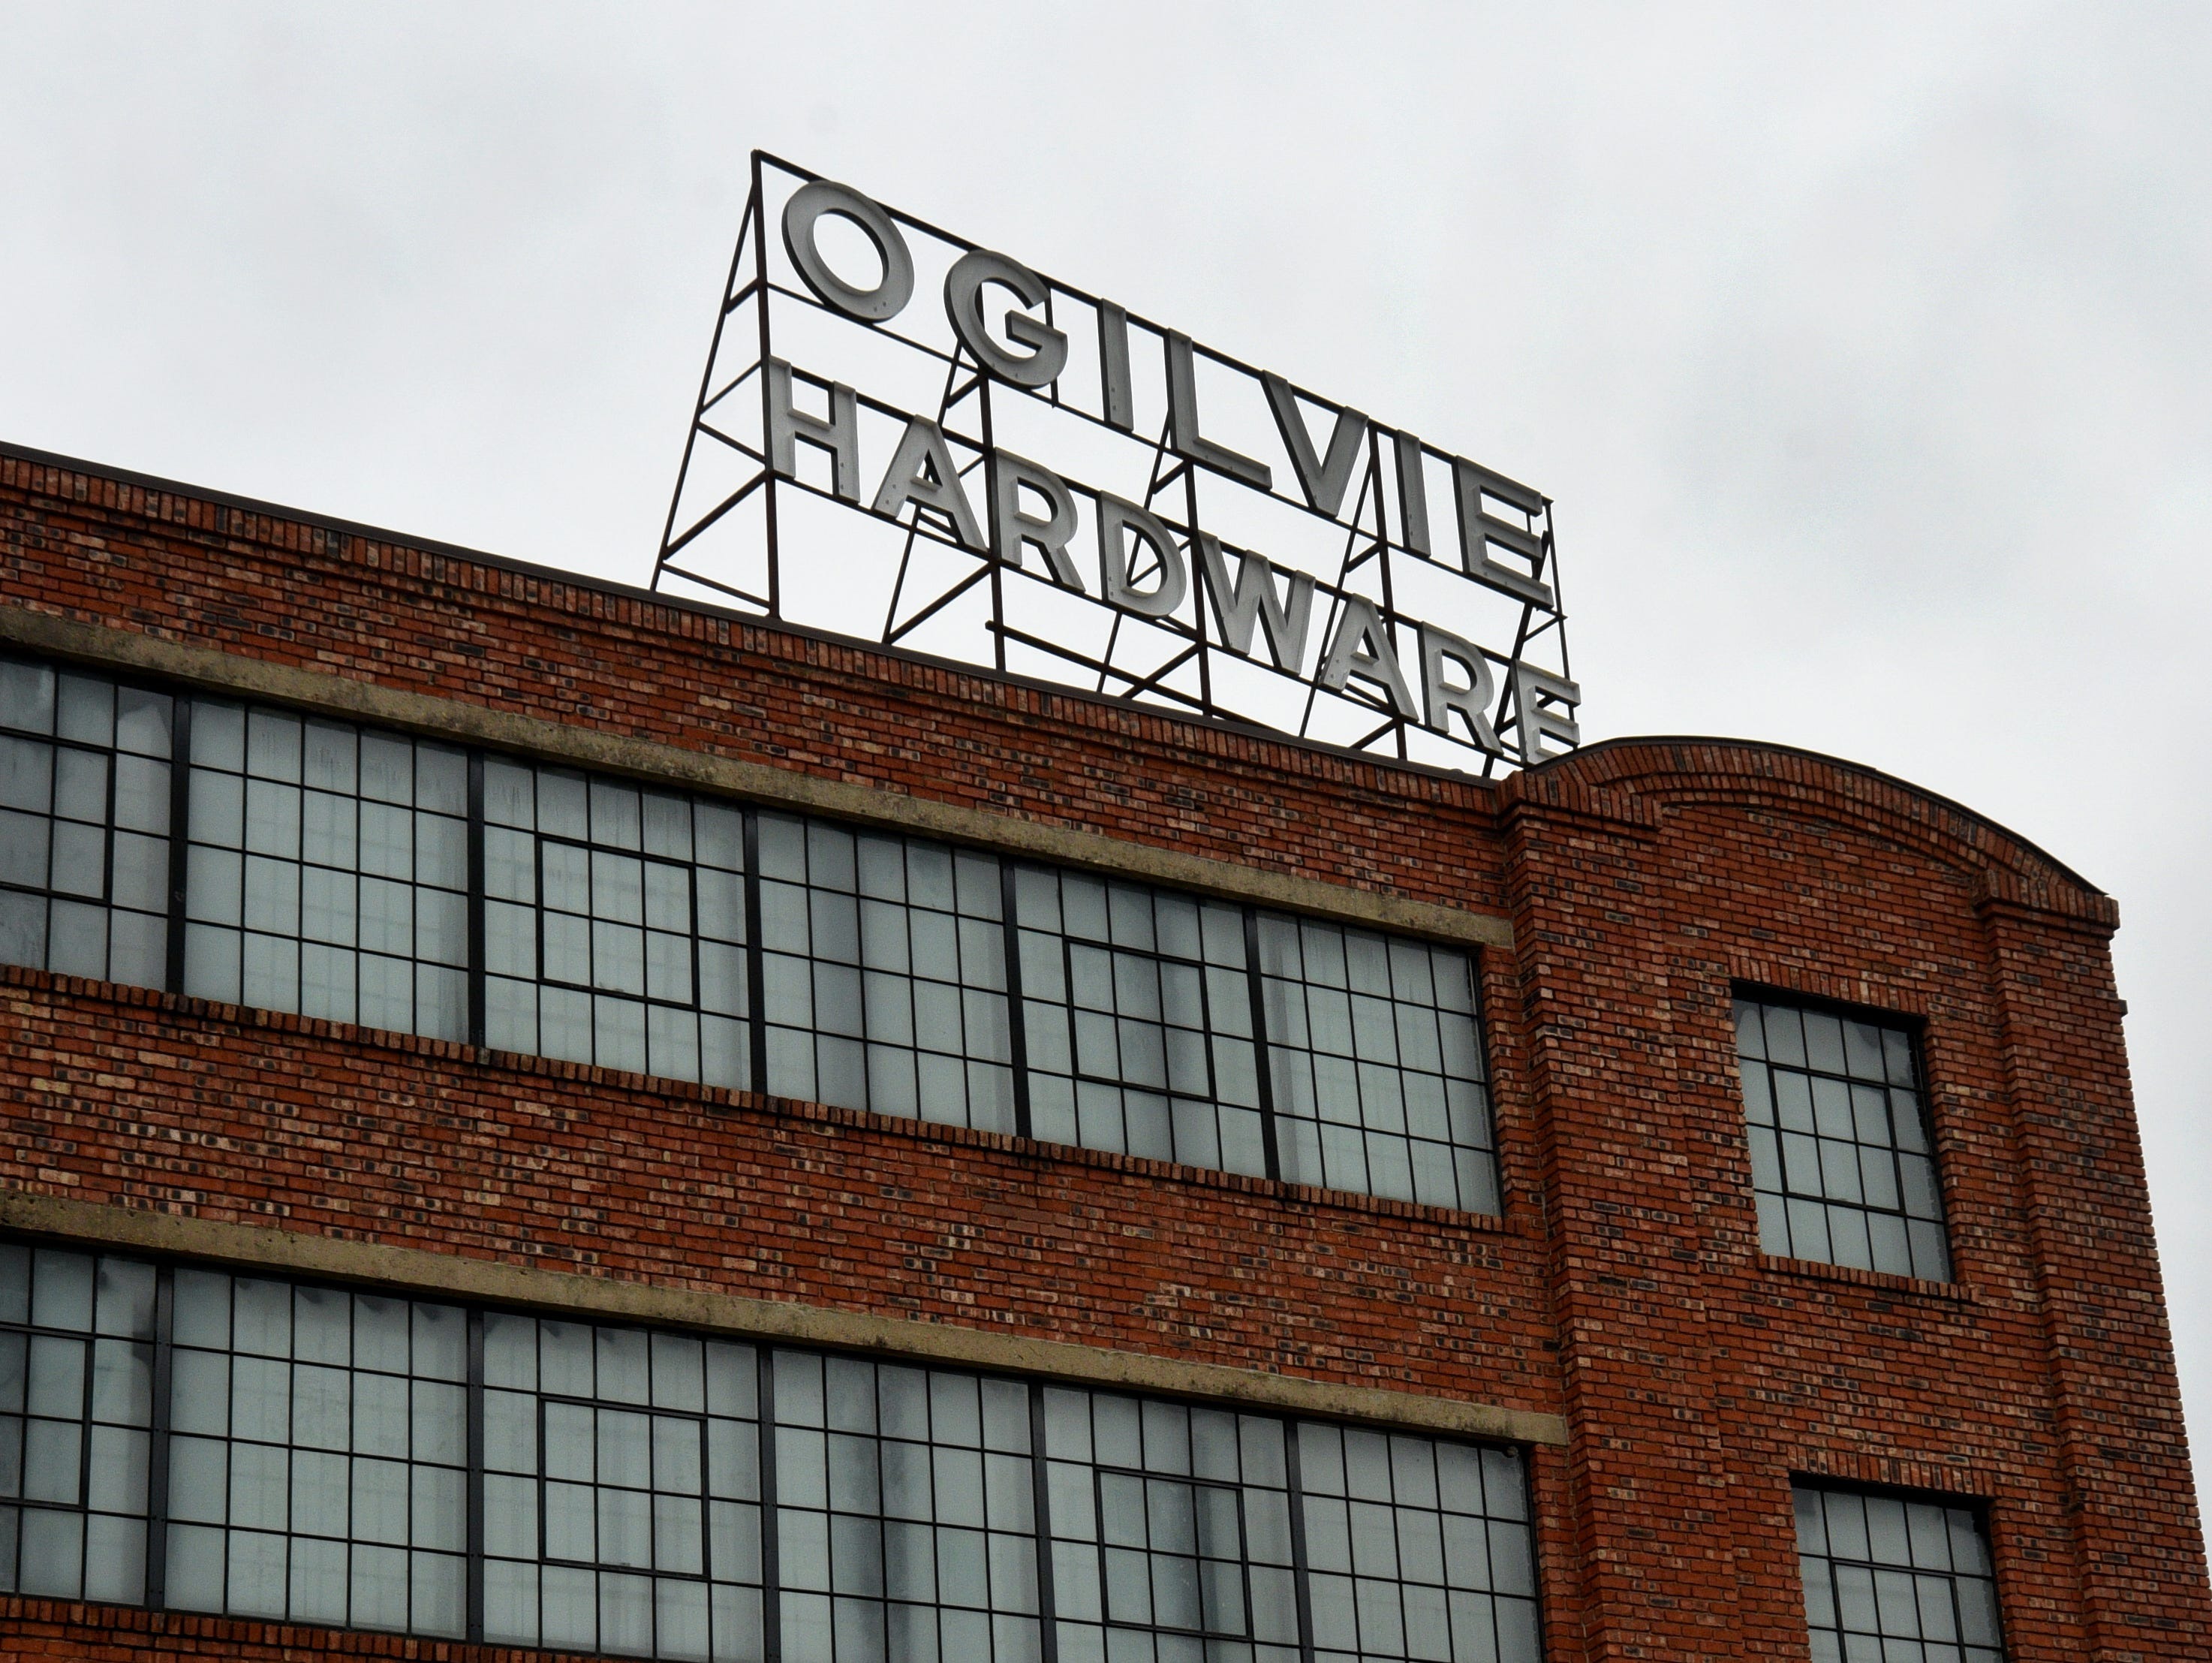 Ogilvie Hardware Lofts in Shreveport.